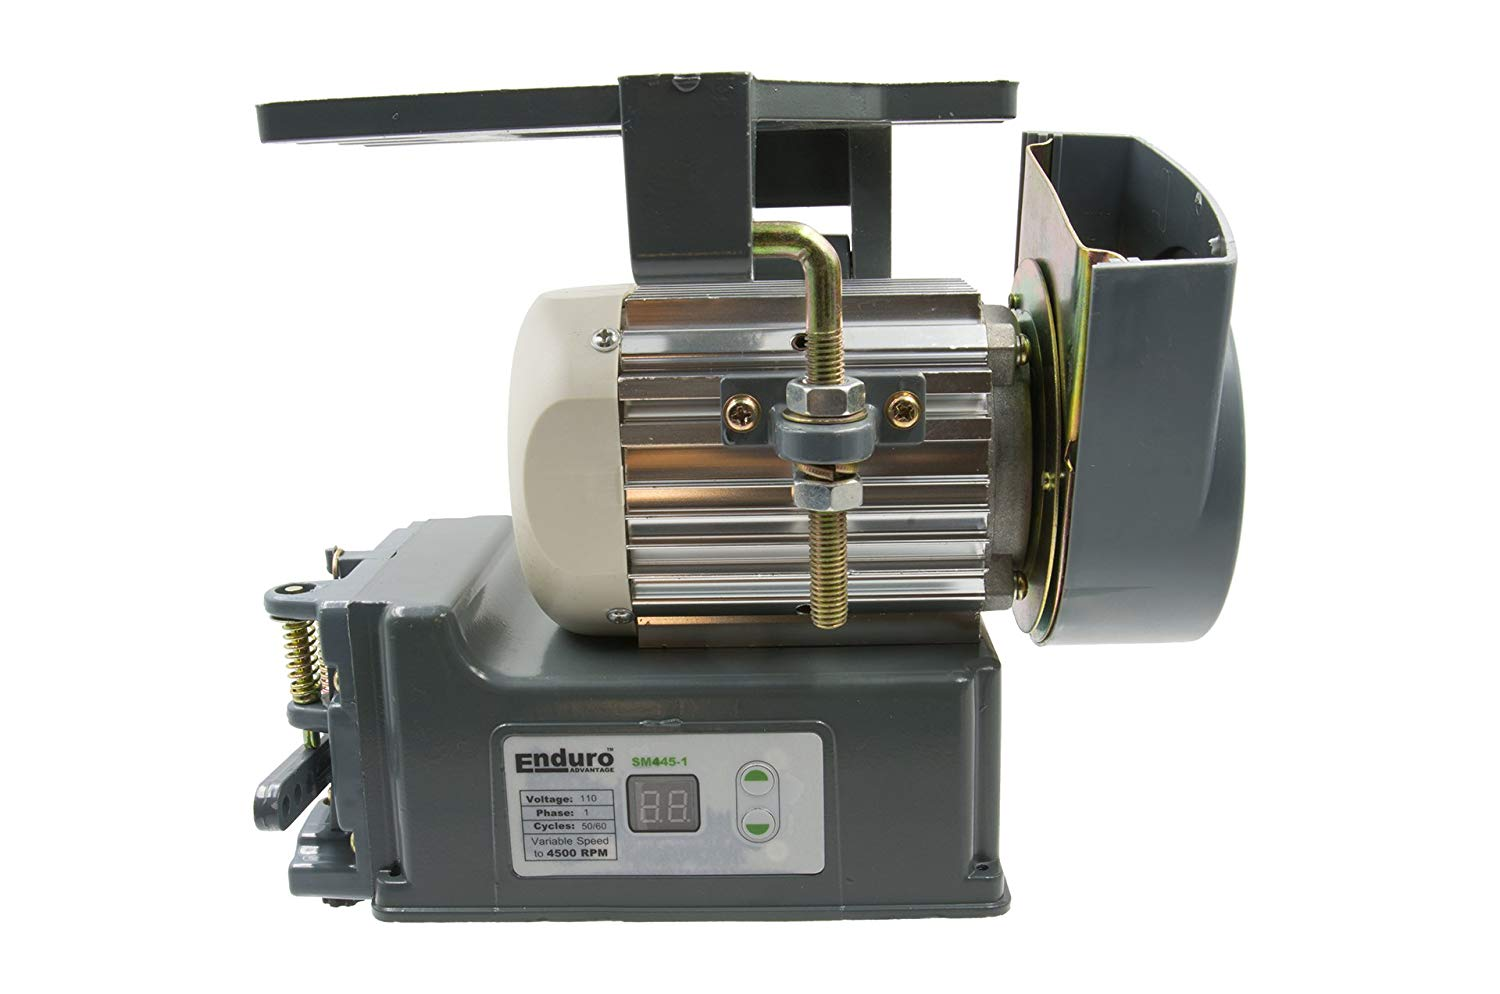 Axis Sewing Machine Energy Saving Servo Motor Slow Variable Speed from 200 RPM to 800 RPM 110v 50-60HZ 550 Watts Brushless Tailoring for Juki Brother Cornely Treasure Singer Heavy Duty Strong